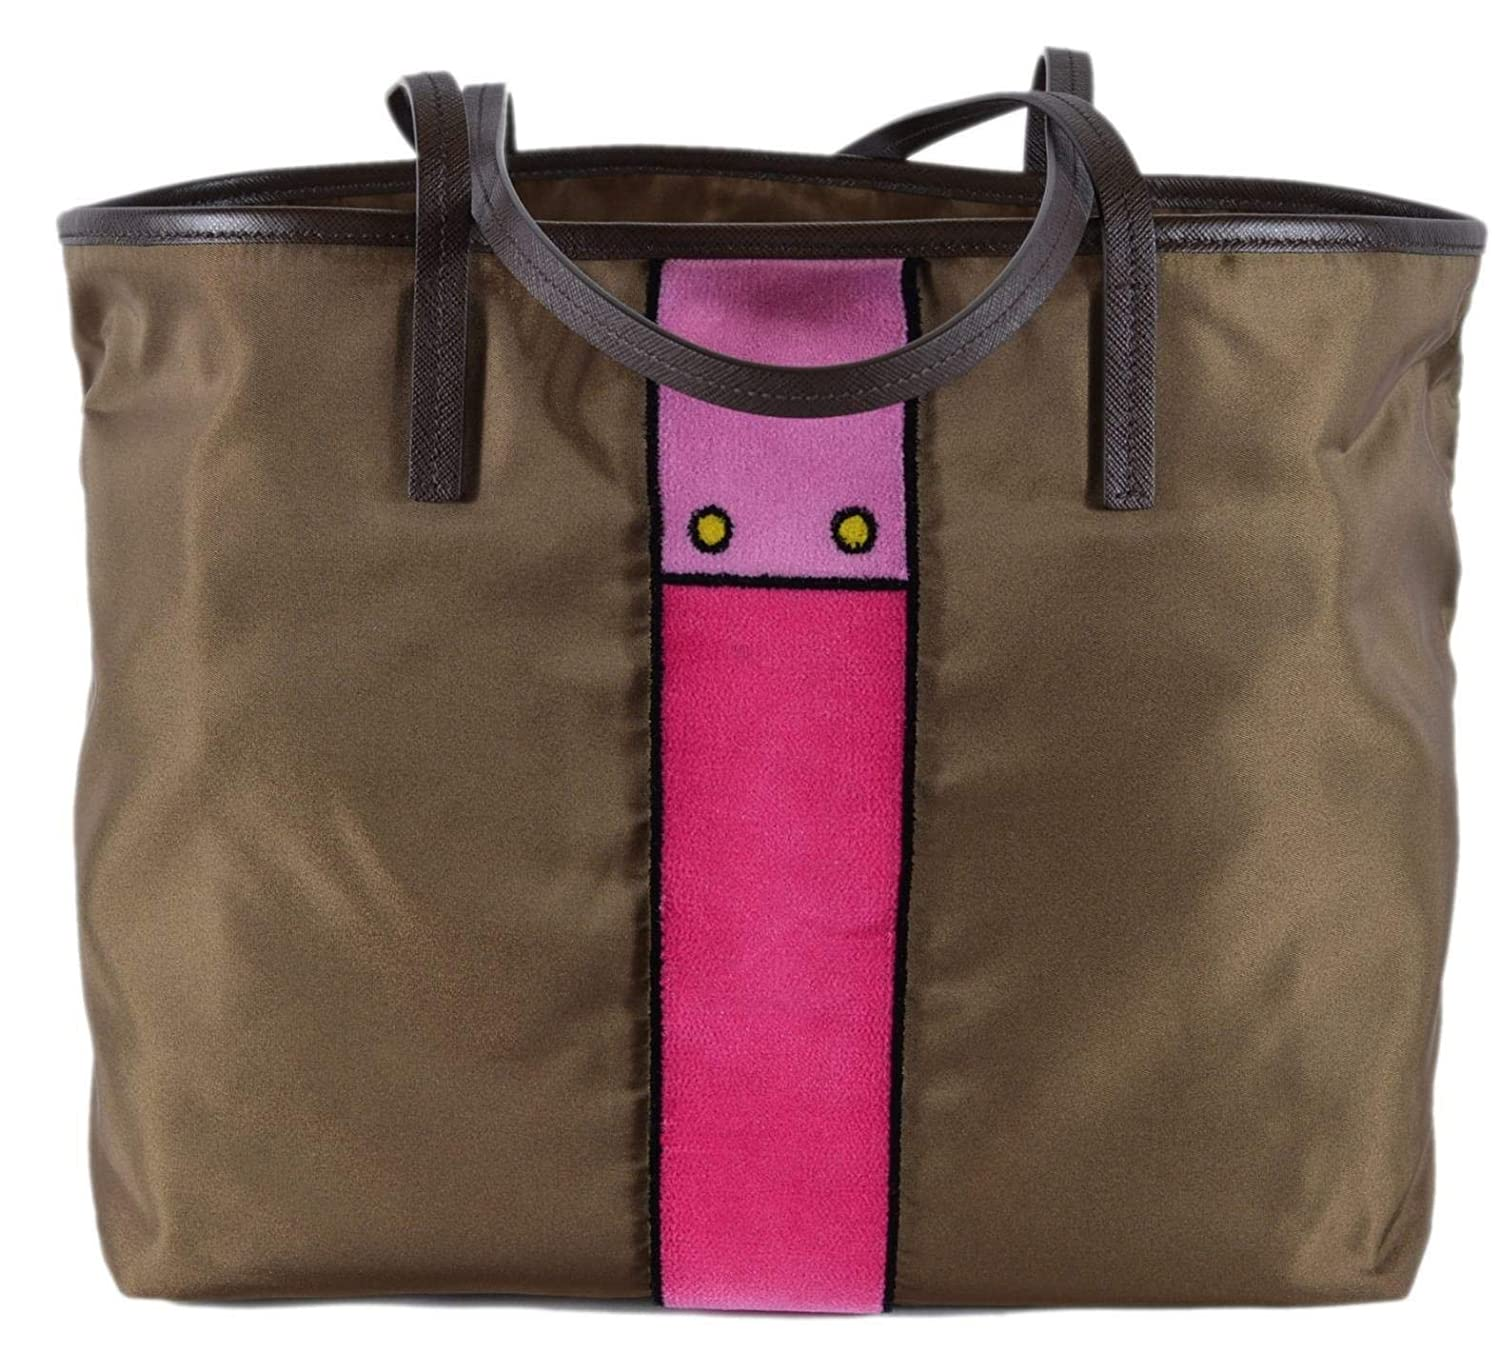 Amazon.com  Prada Womens Brown Tessuto Ricamo Shopping Tote Shoulder Bag  Messenger Bag with Pink Velvet Accent Line Leather Trim 1BG065  Shoes d367ca5a9ac62